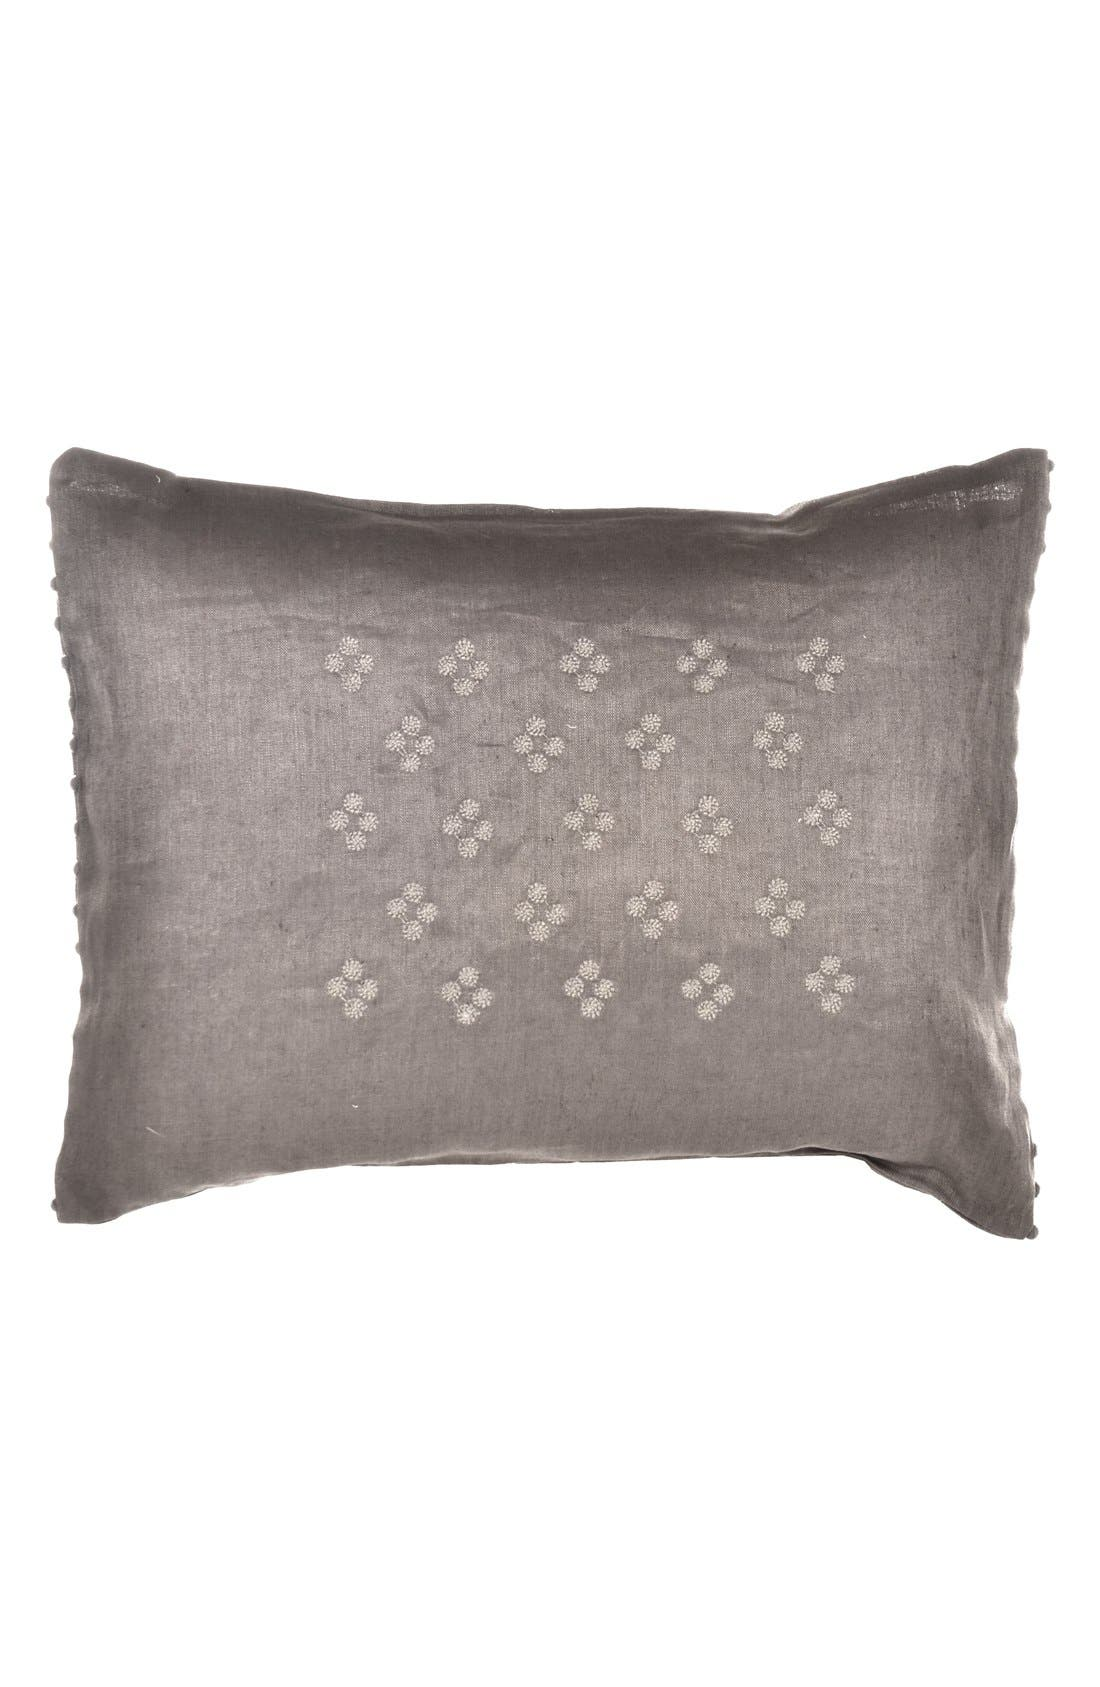 Alternate Image 1 Selected - Vera Wang 'Damask' Embroidered Pillow